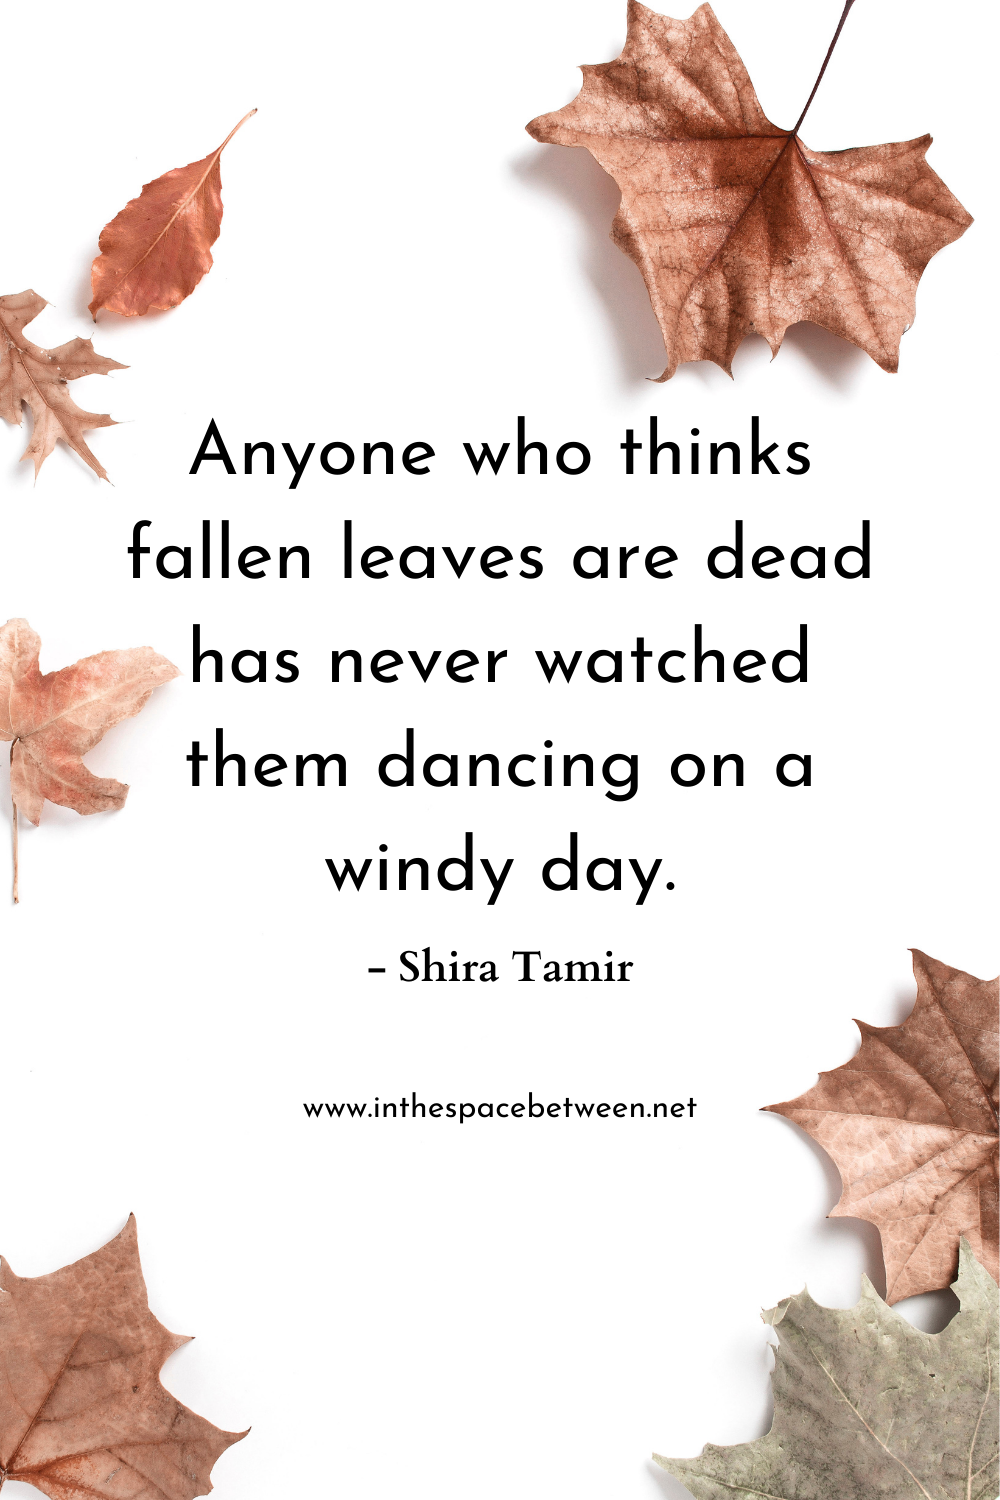 Quote by Shira Tamir about fallen leaves